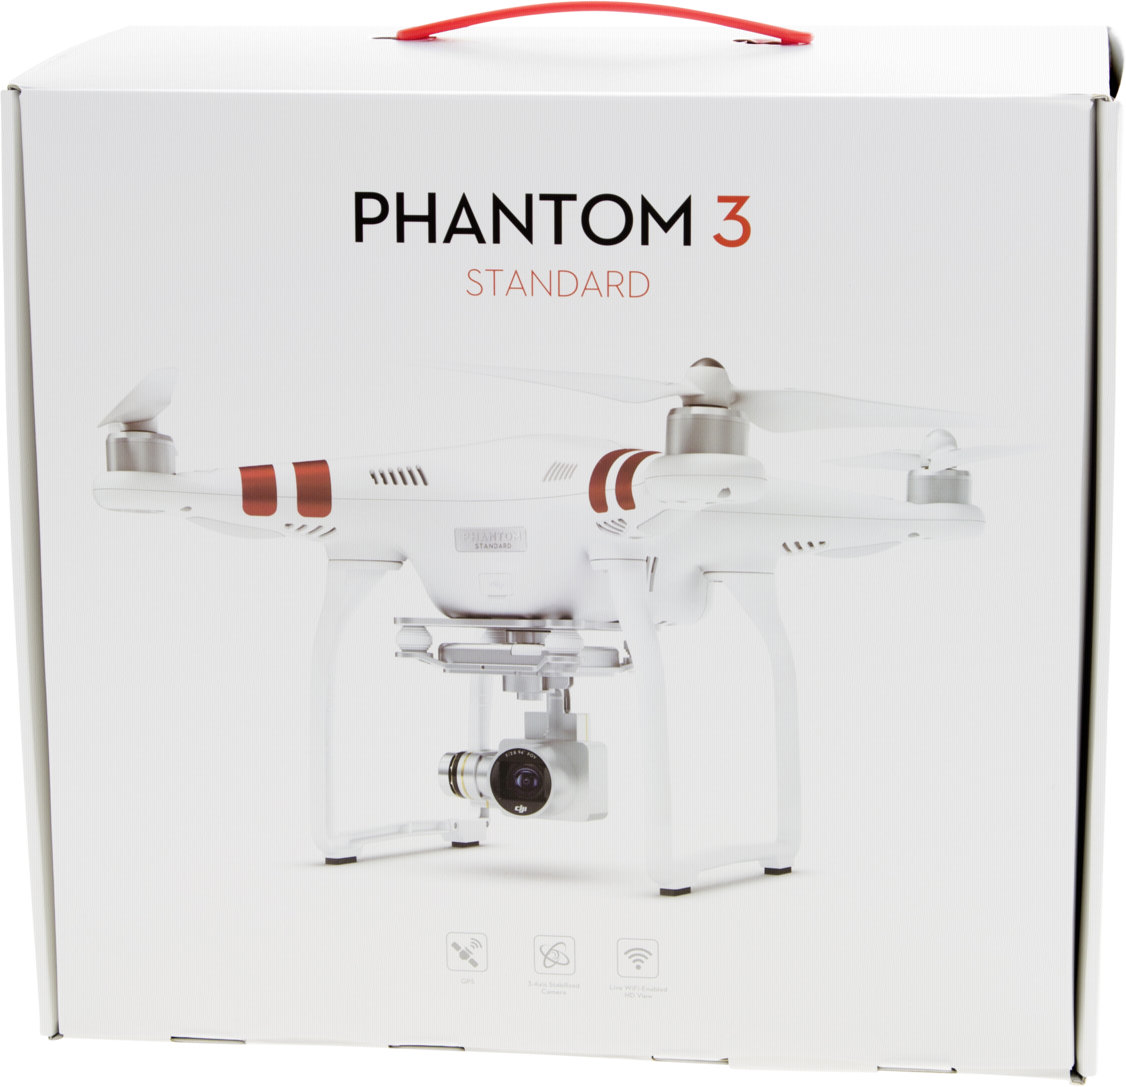 dronas phantom 3 standard dji. Black Bedroom Furniture Sets. Home Design Ideas